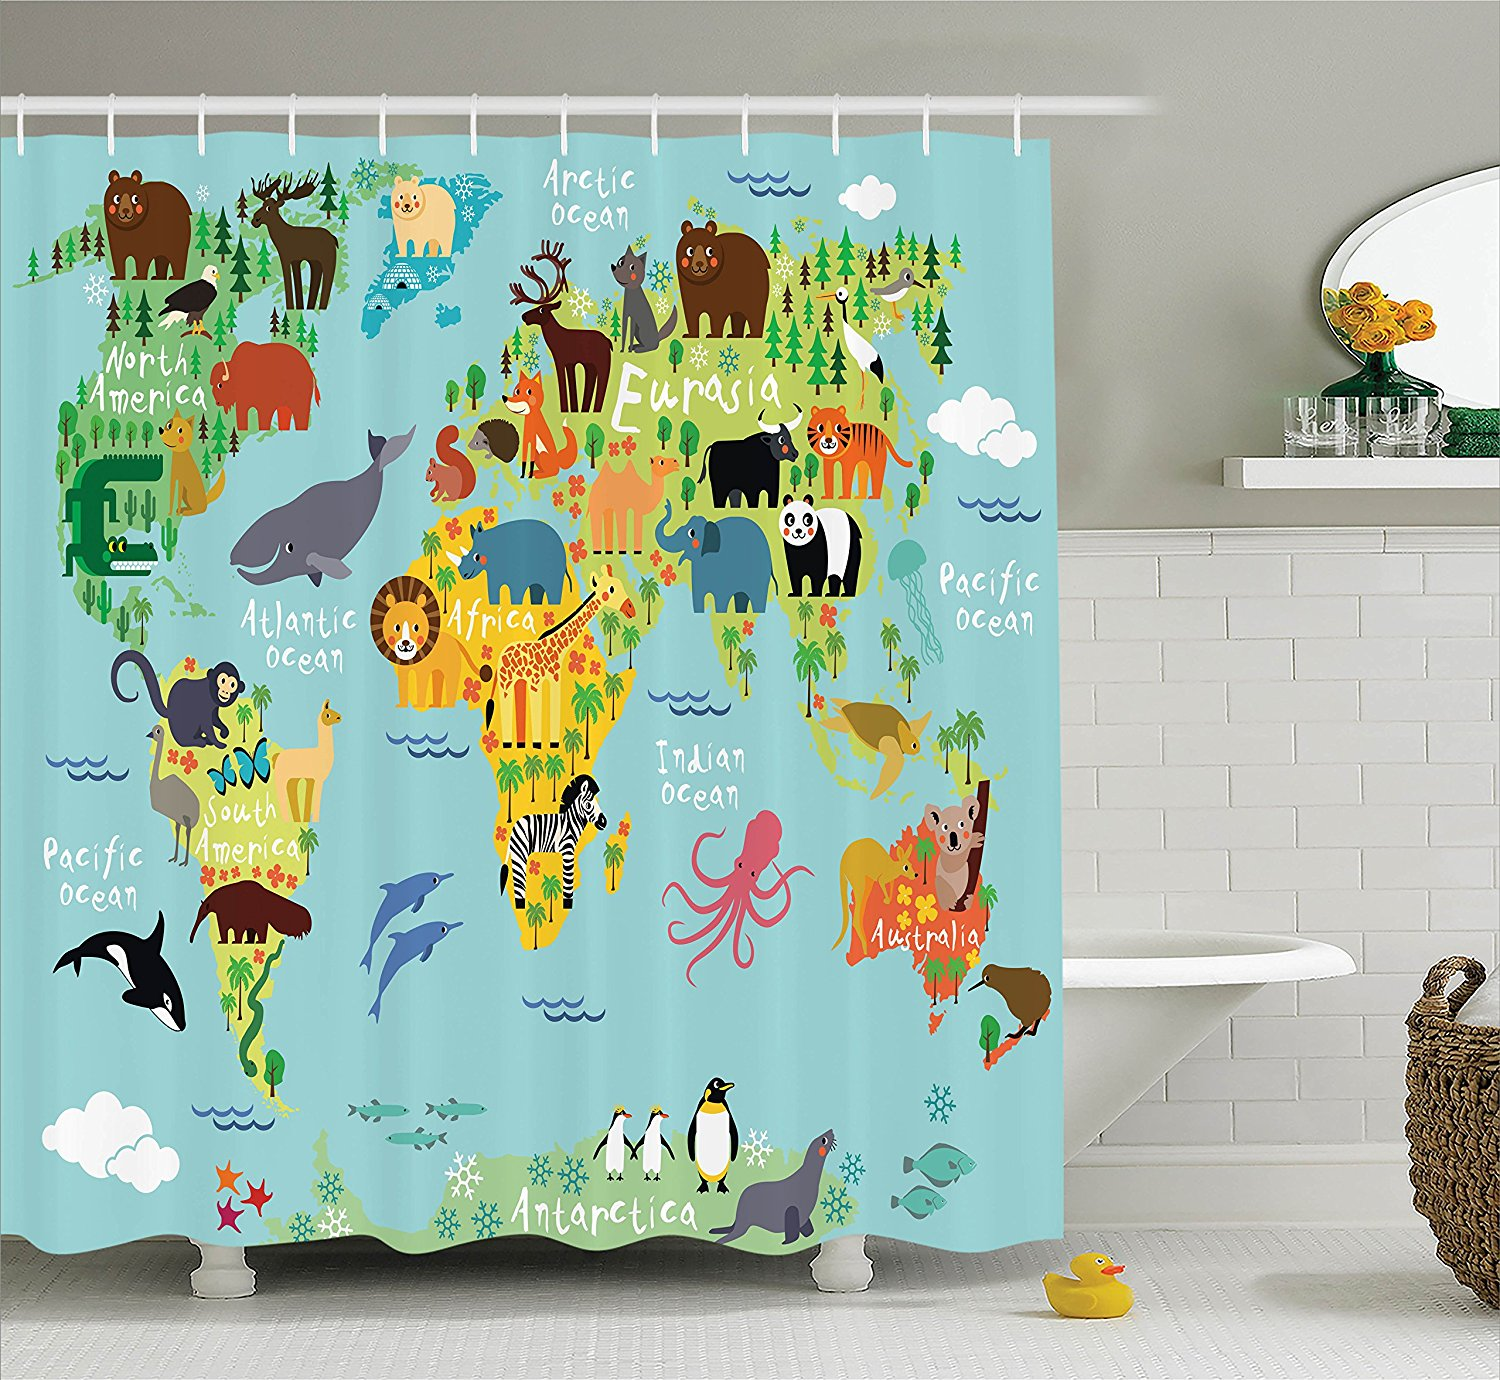 Wanderlust Shower Curtain Decor By Animal Map Of The World For Children And Kids Cartoon Mountains Forests Image In Curtains From Home Garden On